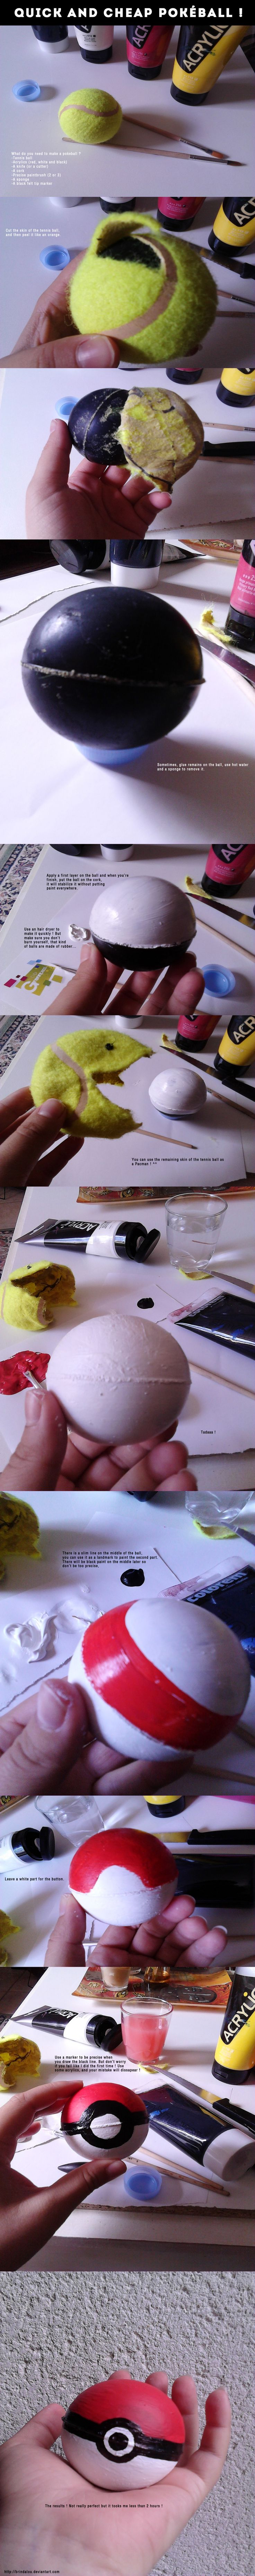 Tutorial. Cheap and quick home-made pokeball ! by brindalou http://brindalou.deviantart.com/art/Tutorial-Cheap-and-quick-home-made-pokeball-371183713